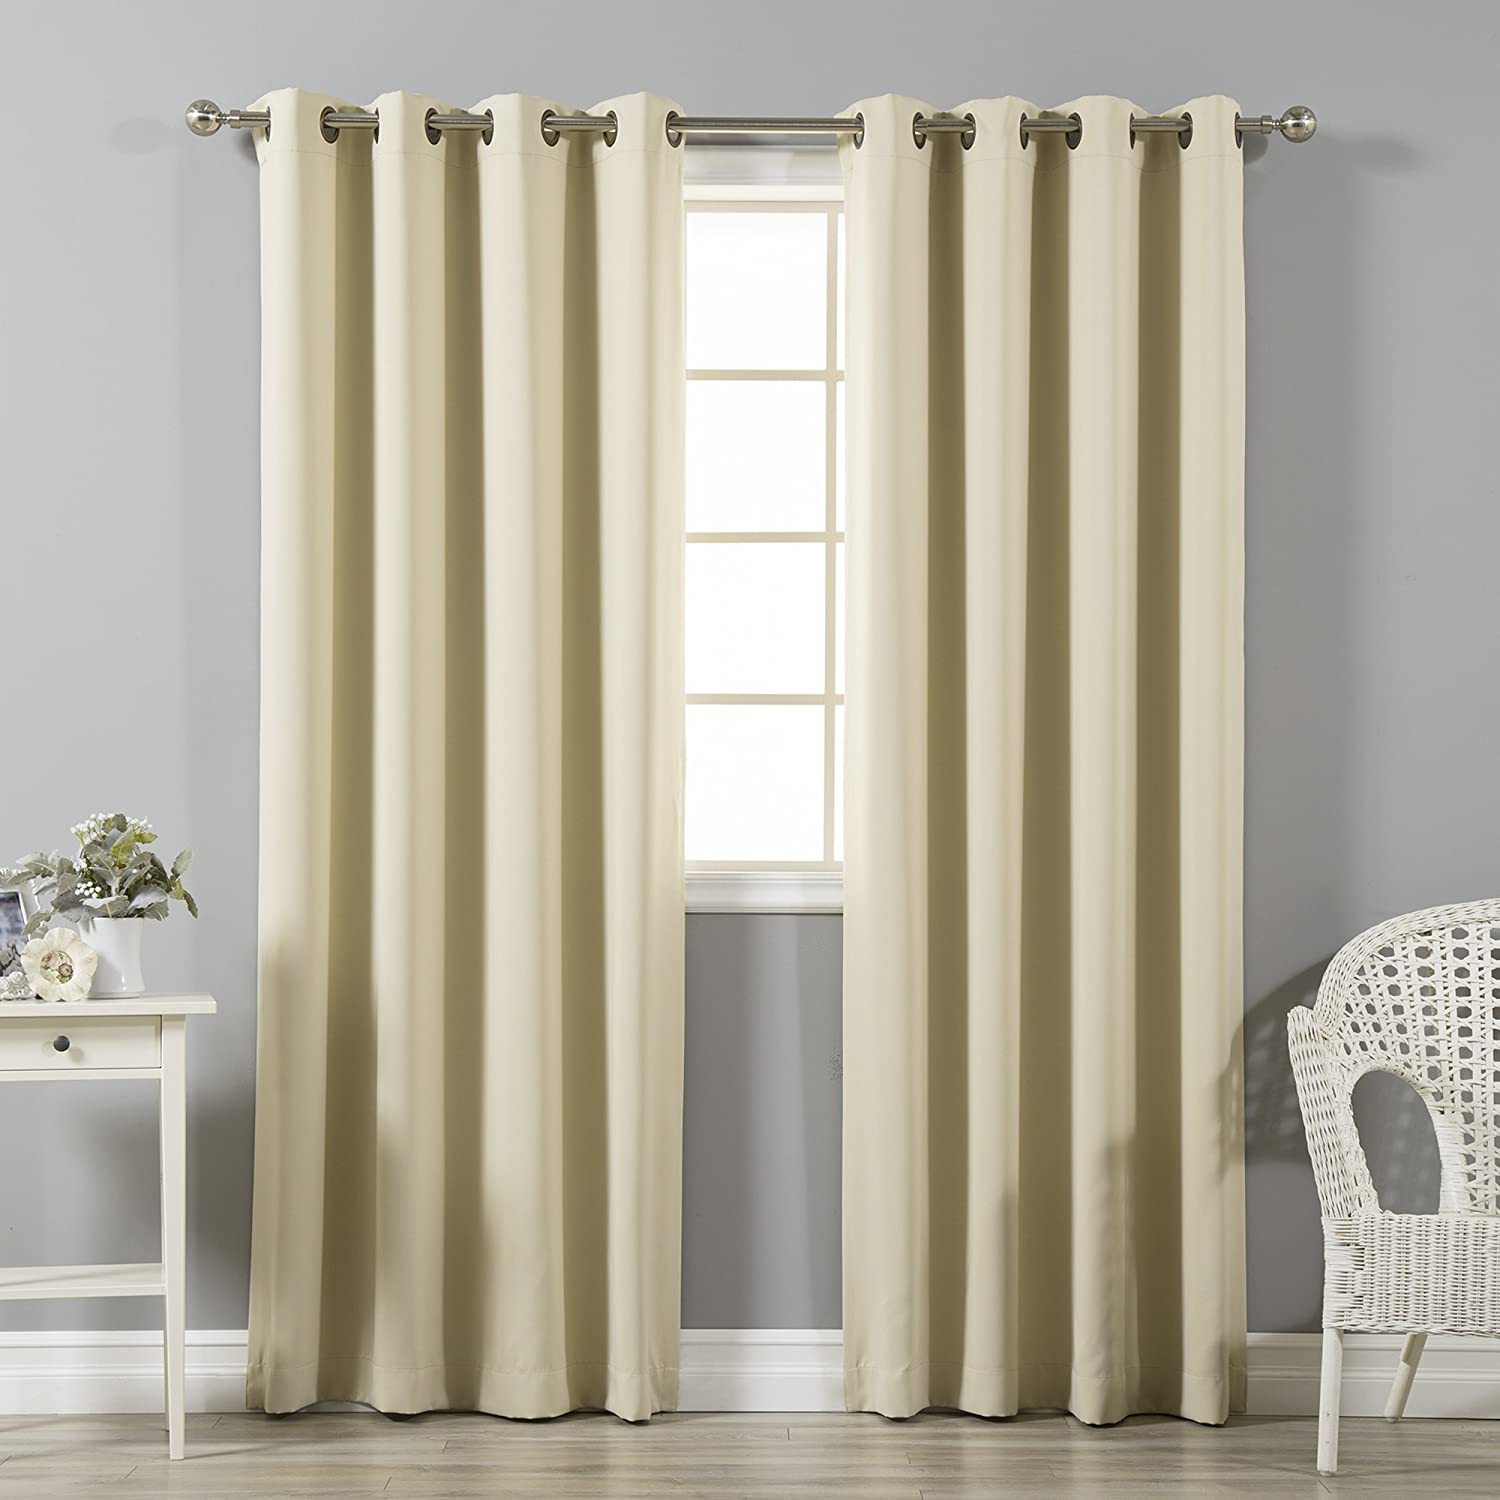 bestseekers curtain curtains blackout in buy to thermal amazon best the